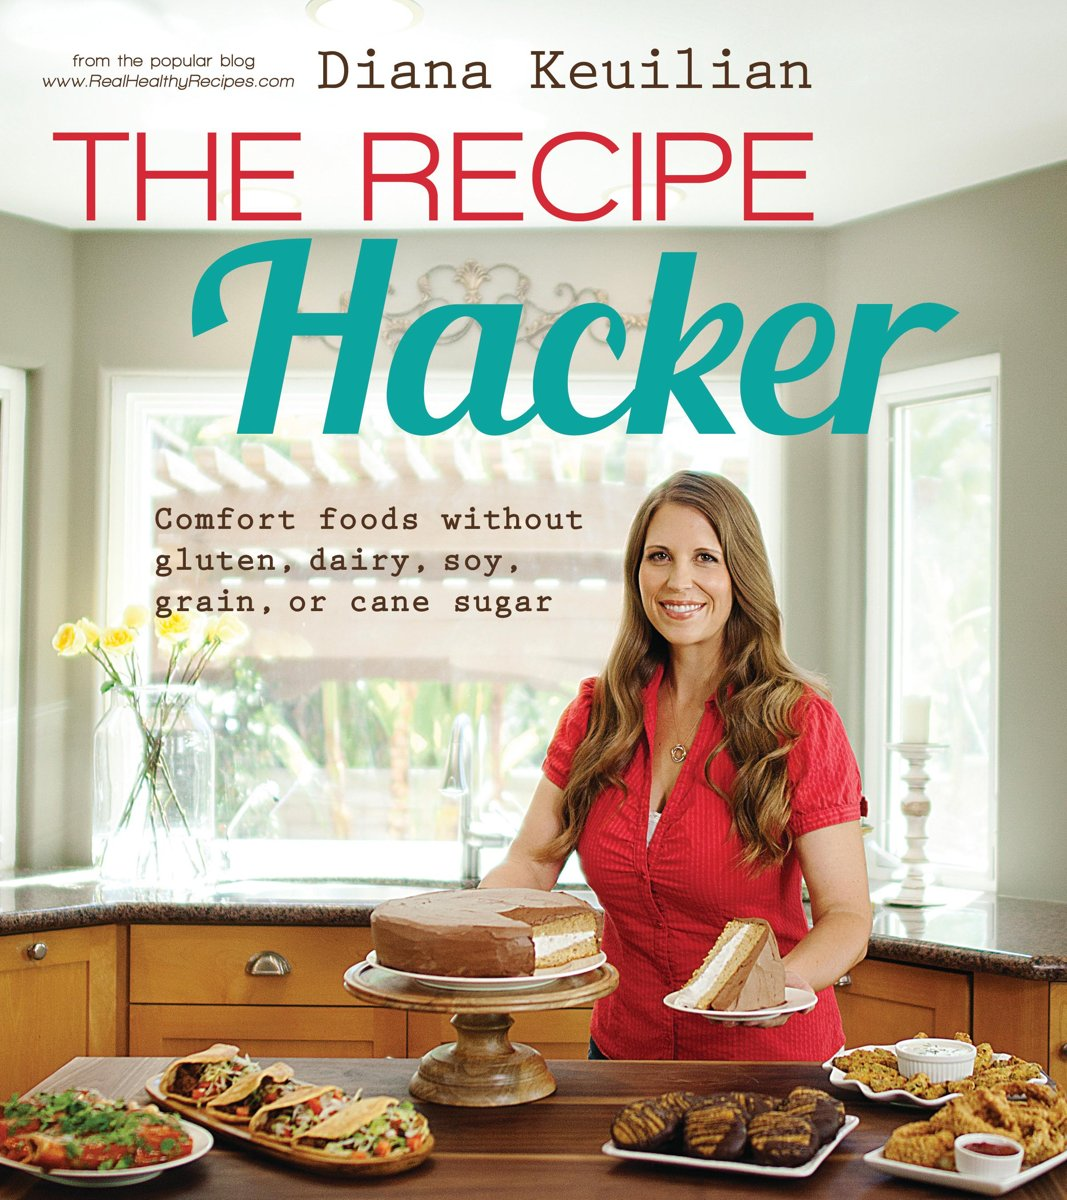 Recipe Hacker, The